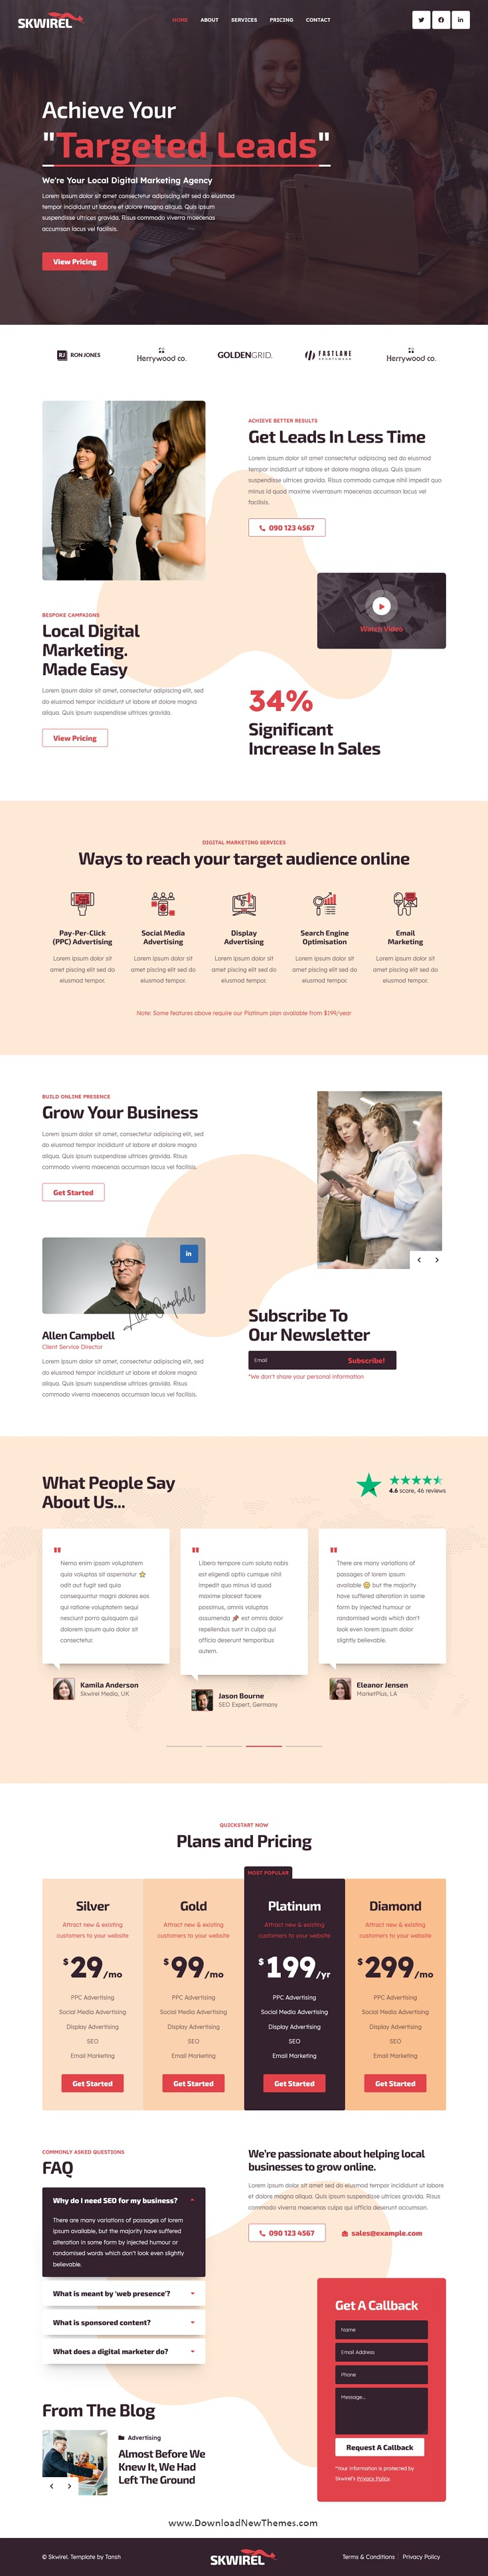 High Conversion Marketing Landing Page Template